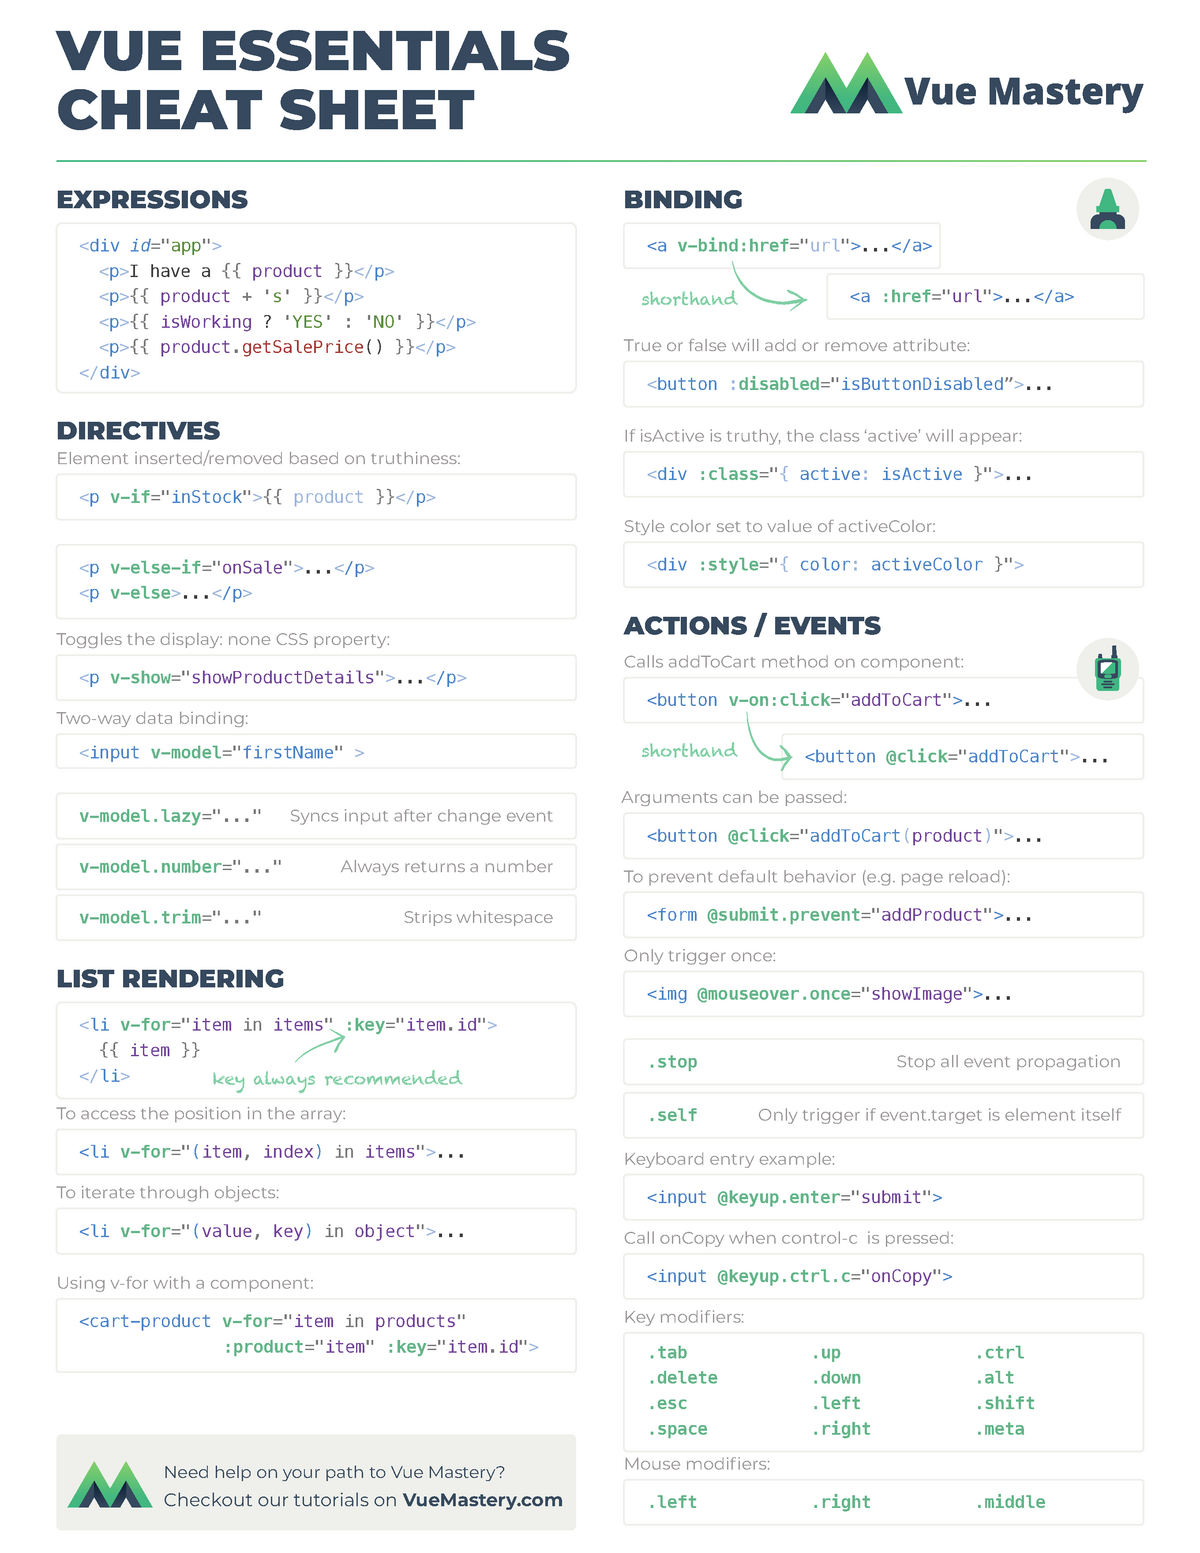 Vue Essentials Cheat Sheet - Programming I CSE-201 - StuDocu